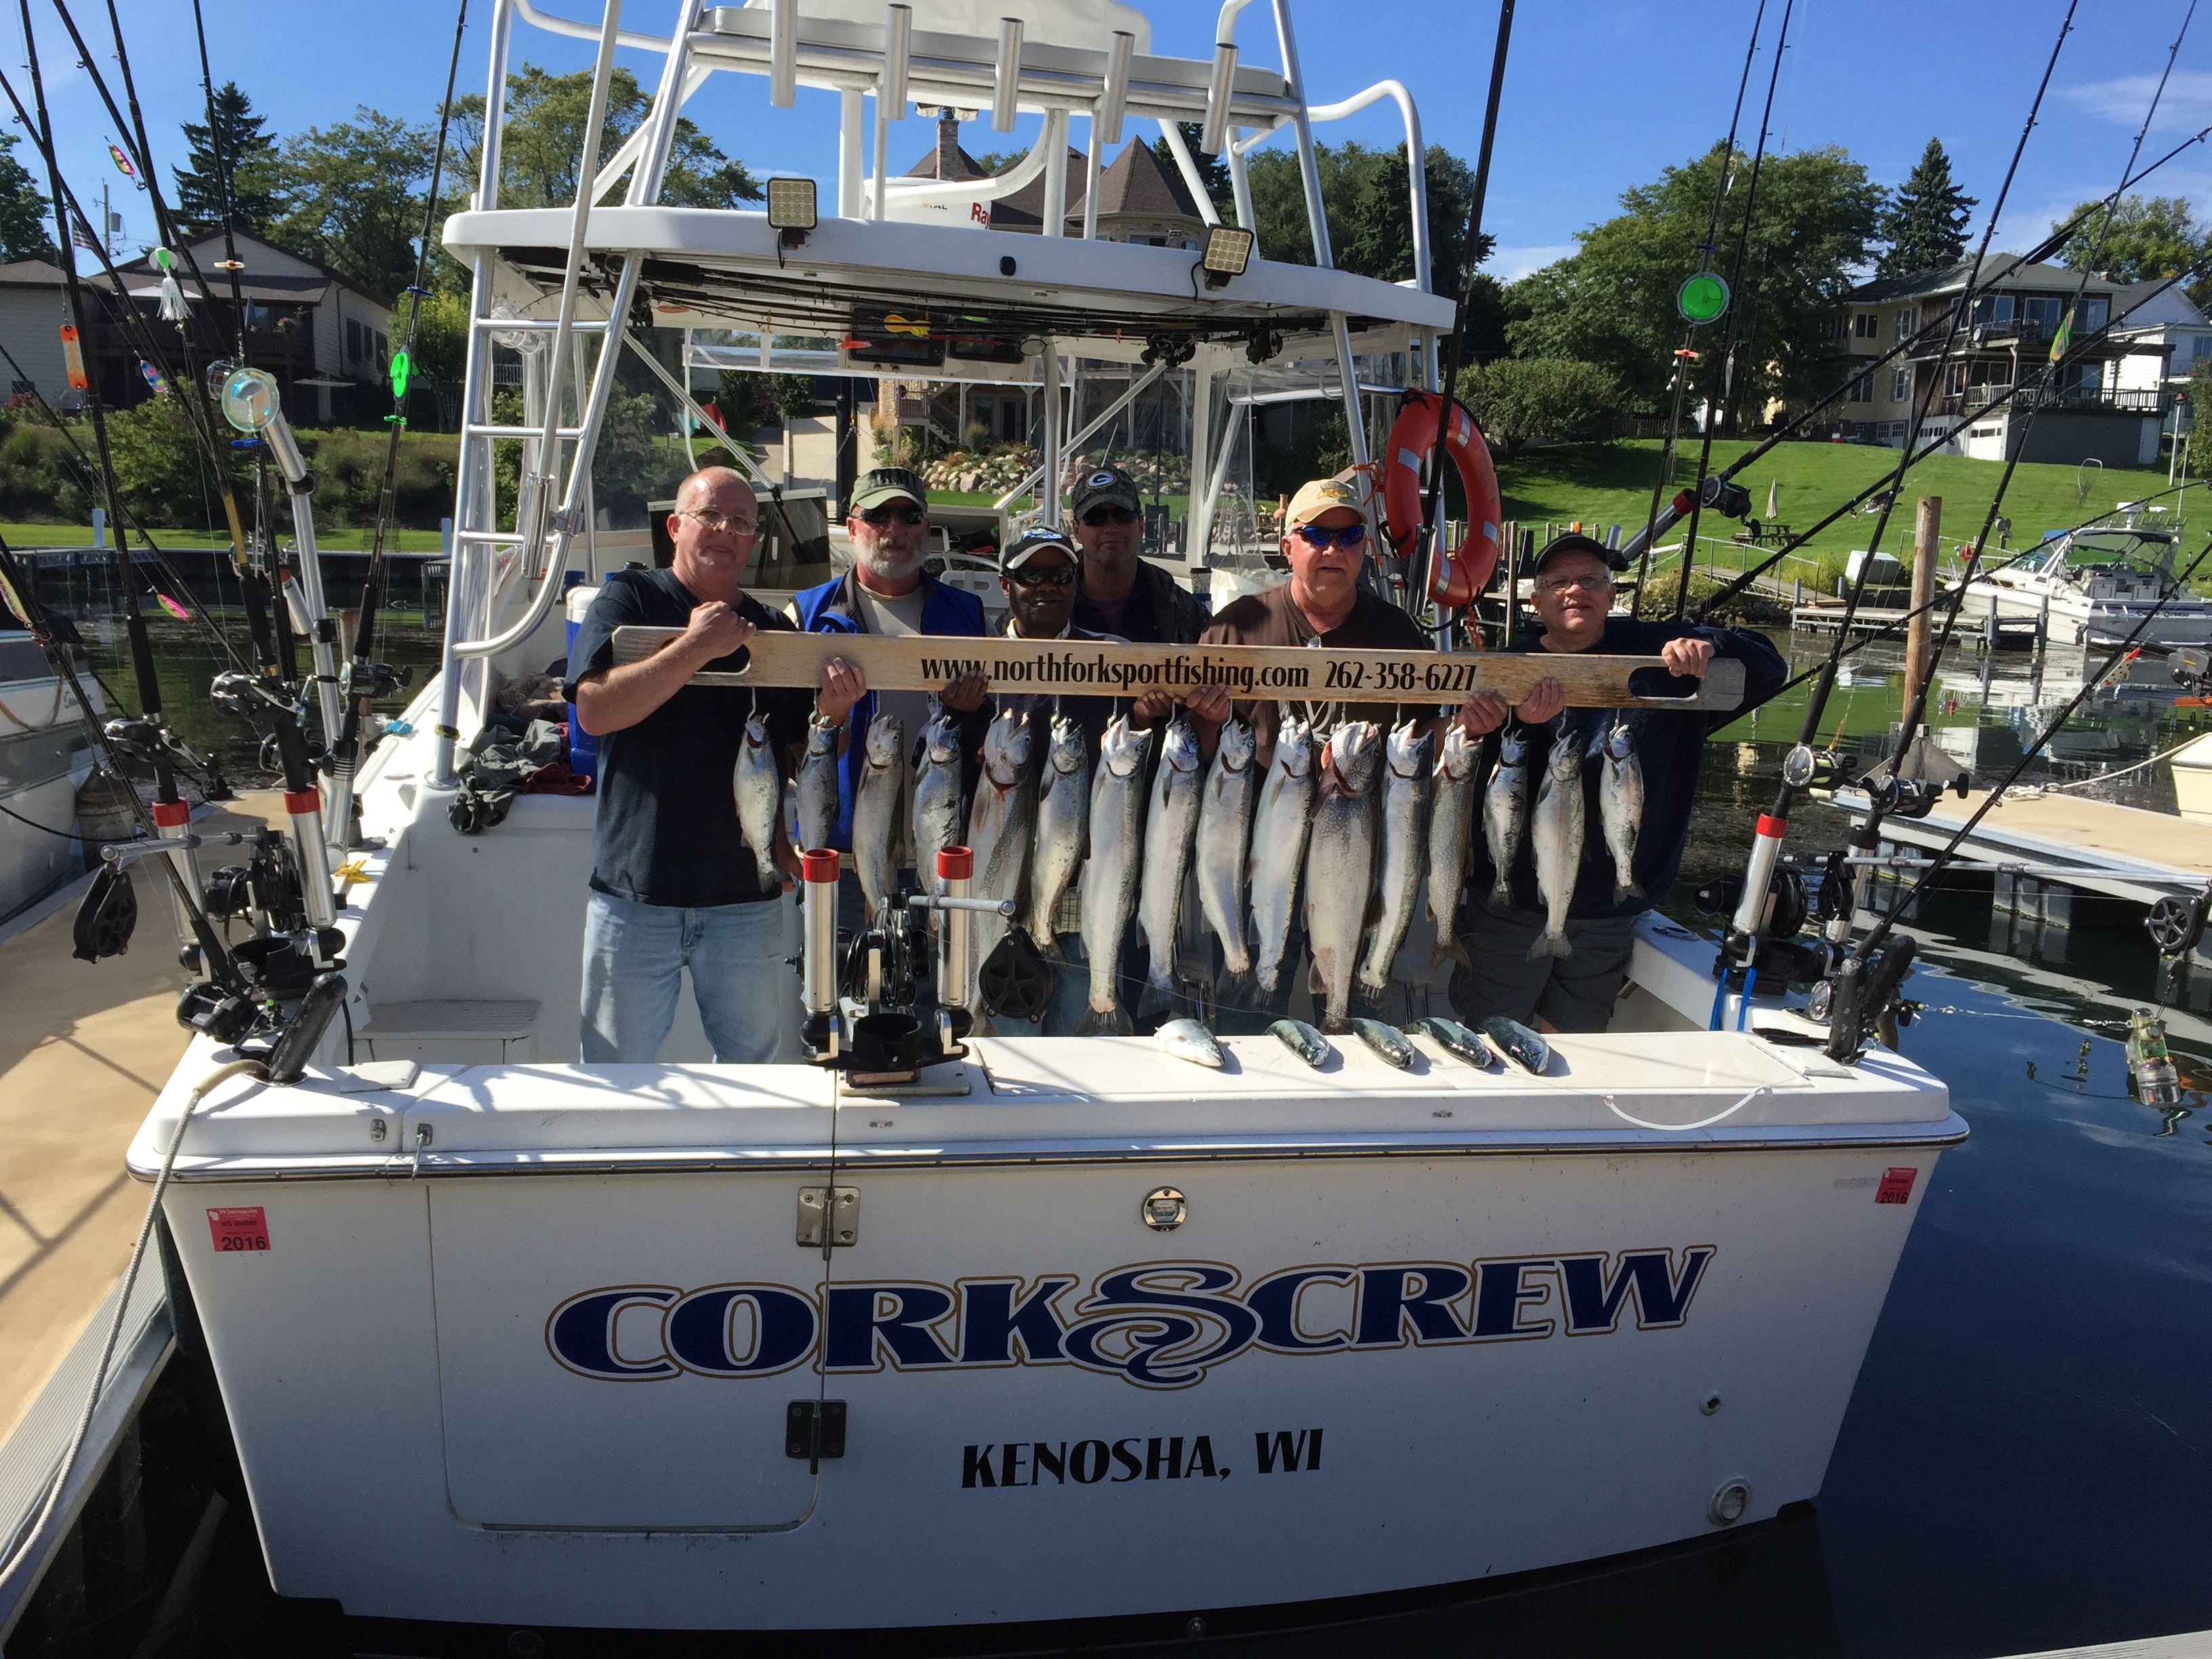 5-people-in-kenosh-wi-on-boat-with-daily-catch